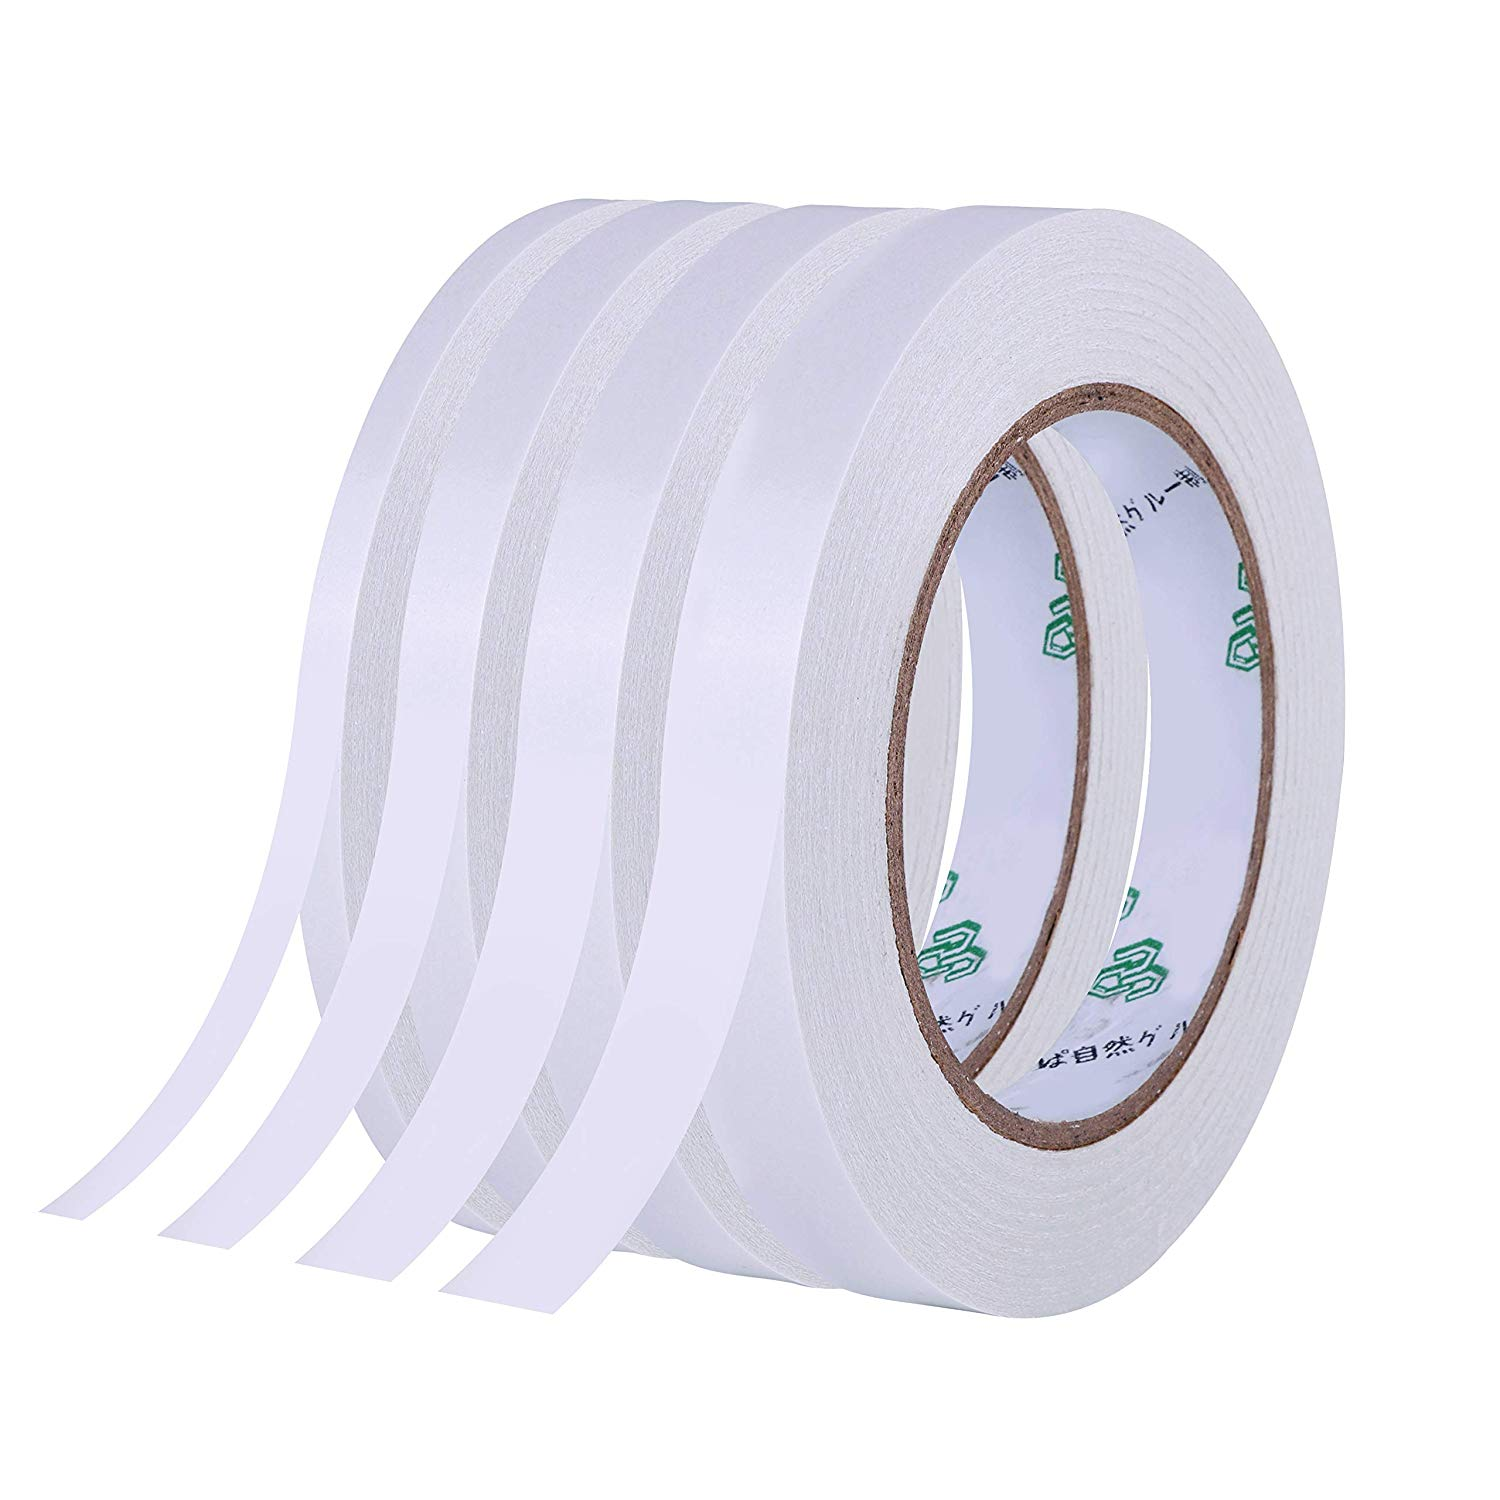 Atrigger 4 Rolls Double Sided Adhesive Tape for Scrapbook,Gifts, Photos,Documents, Craft Projects, Cards and Boxes (Width: 1/4 Inch, 1/3 Inch, 1/2 inch, 3/4inch, 43.7yards/40M Each roll)